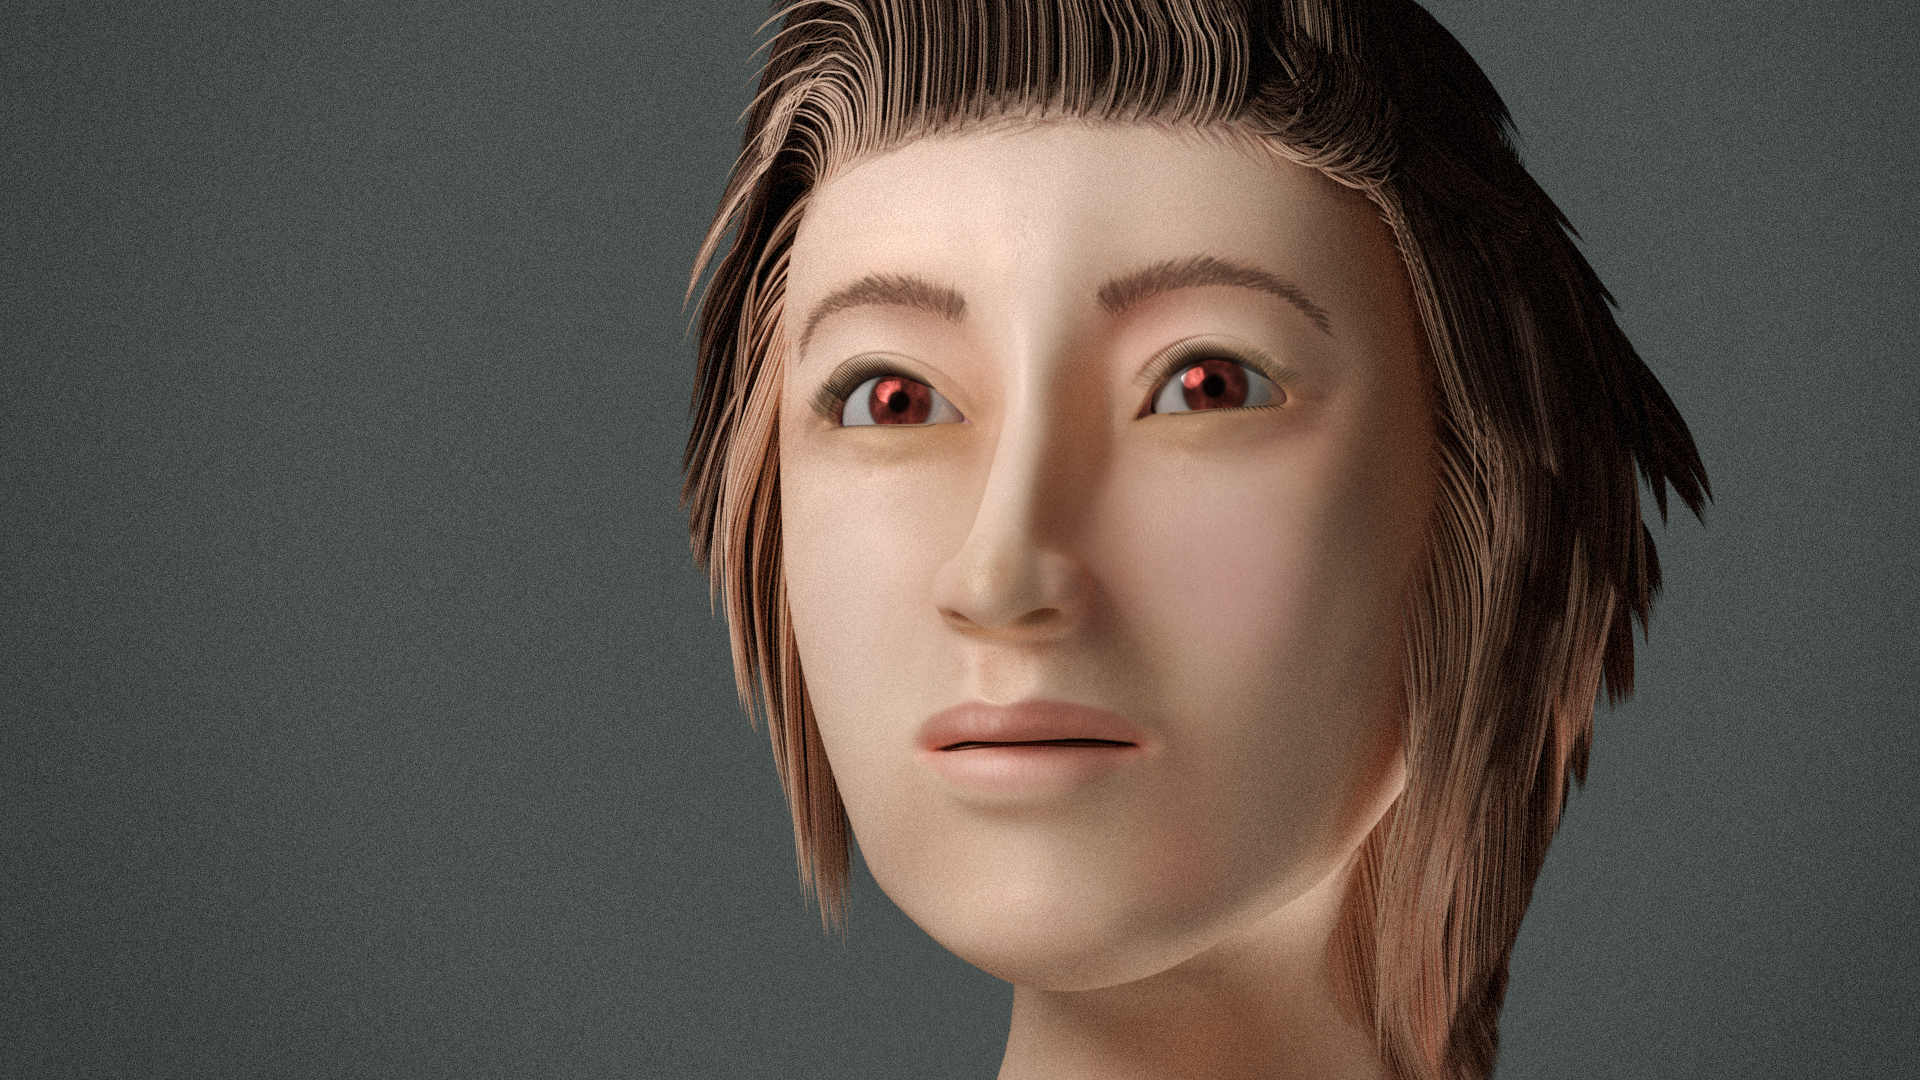 【 Blender】face modeling